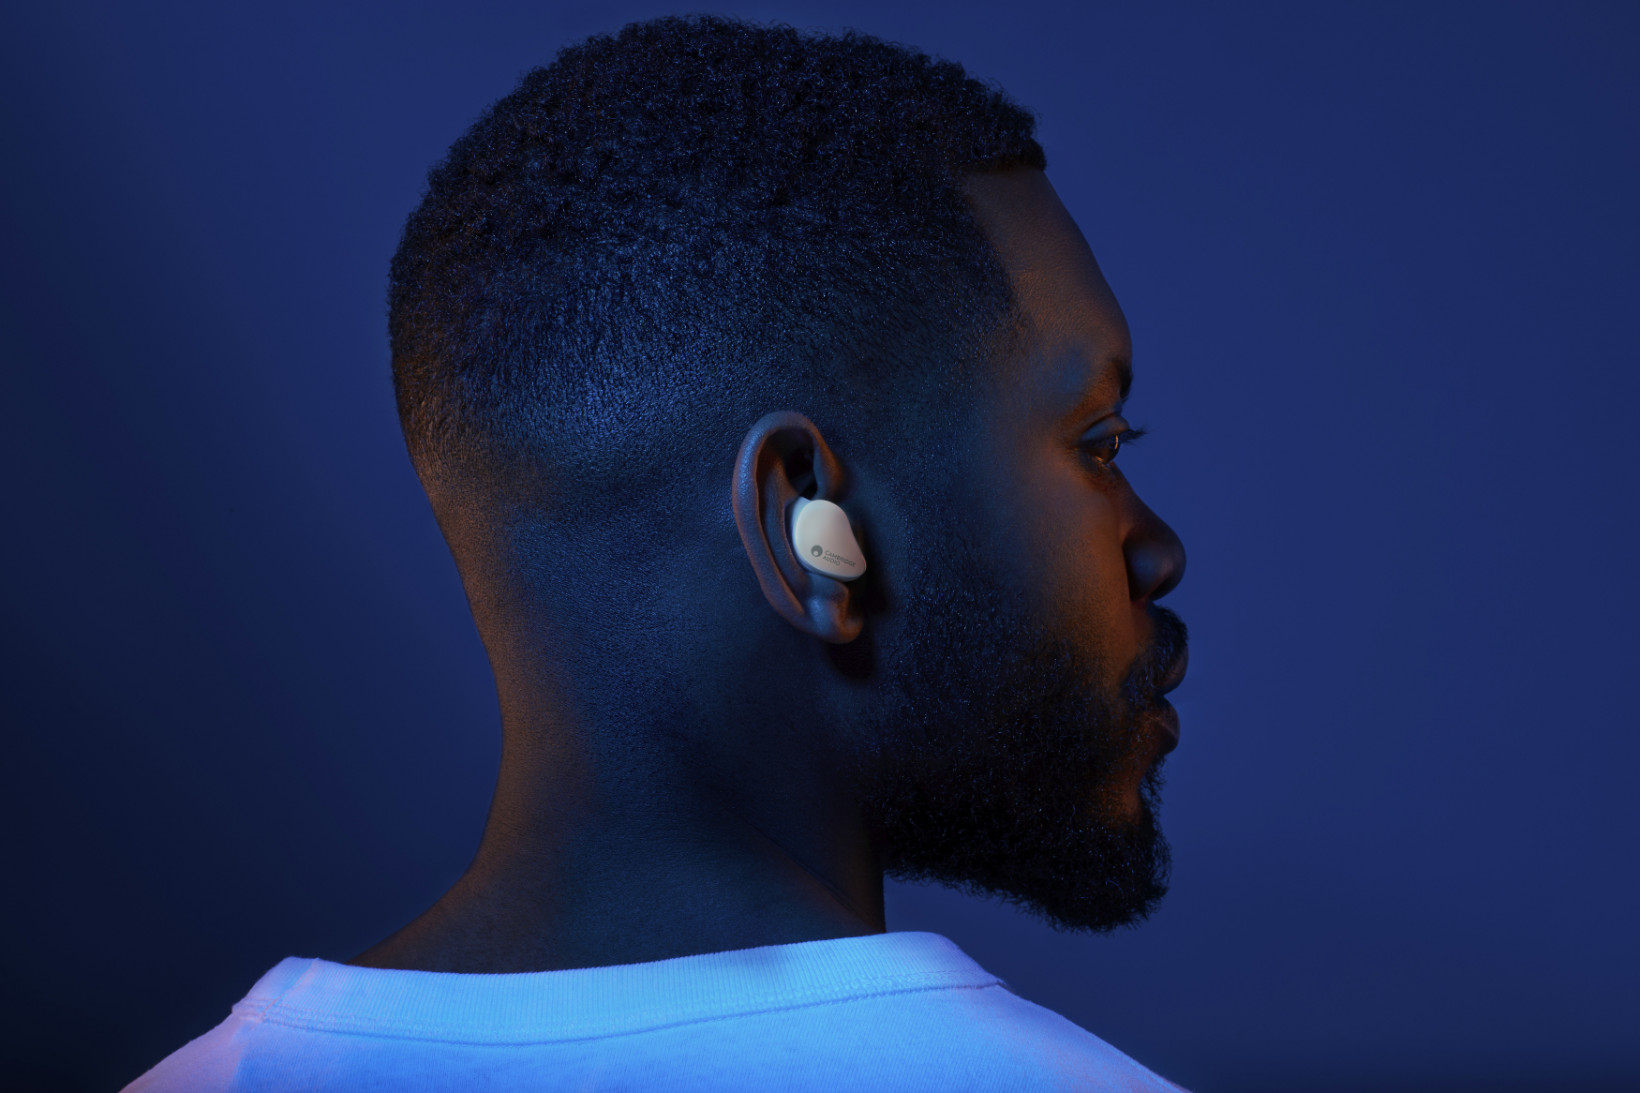 Cambridge Audio's Melomania Touch earbuds promise 50 hours of battery life